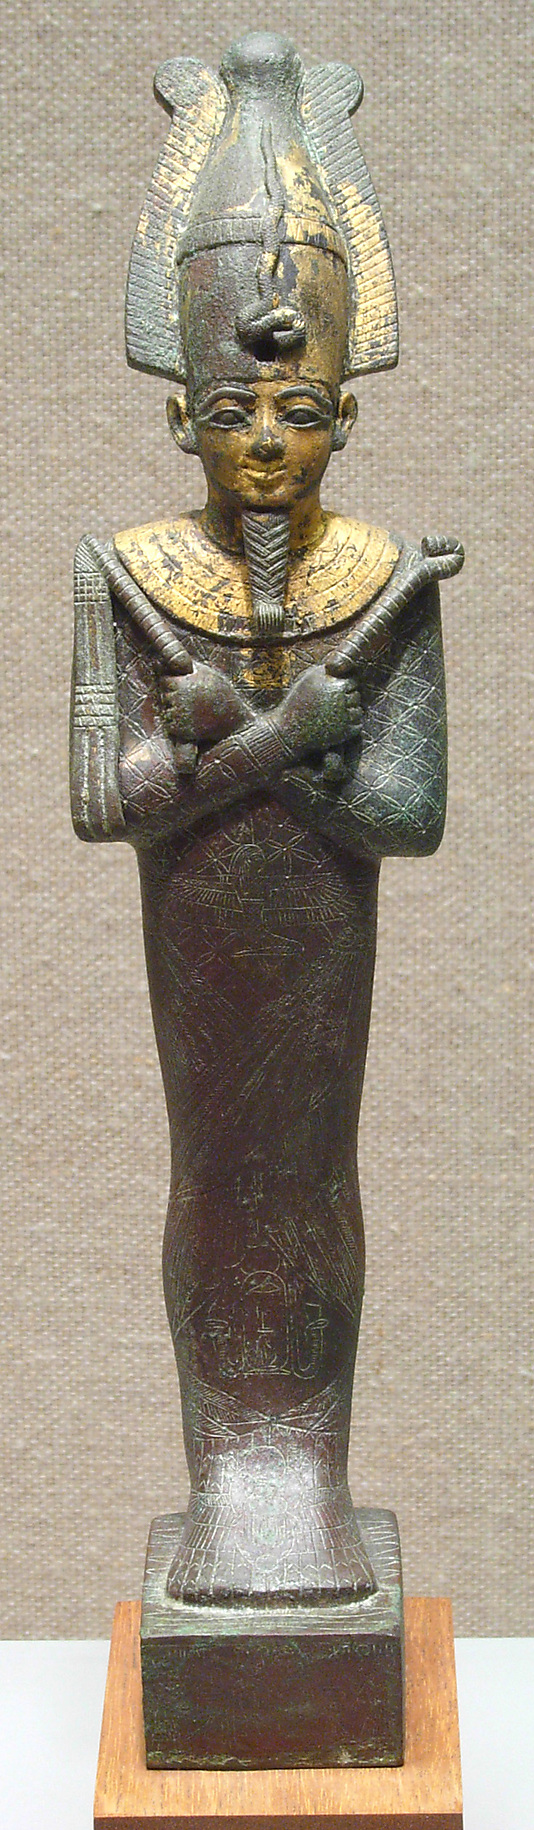 Statuette of Osiris with the name of Padihorpere